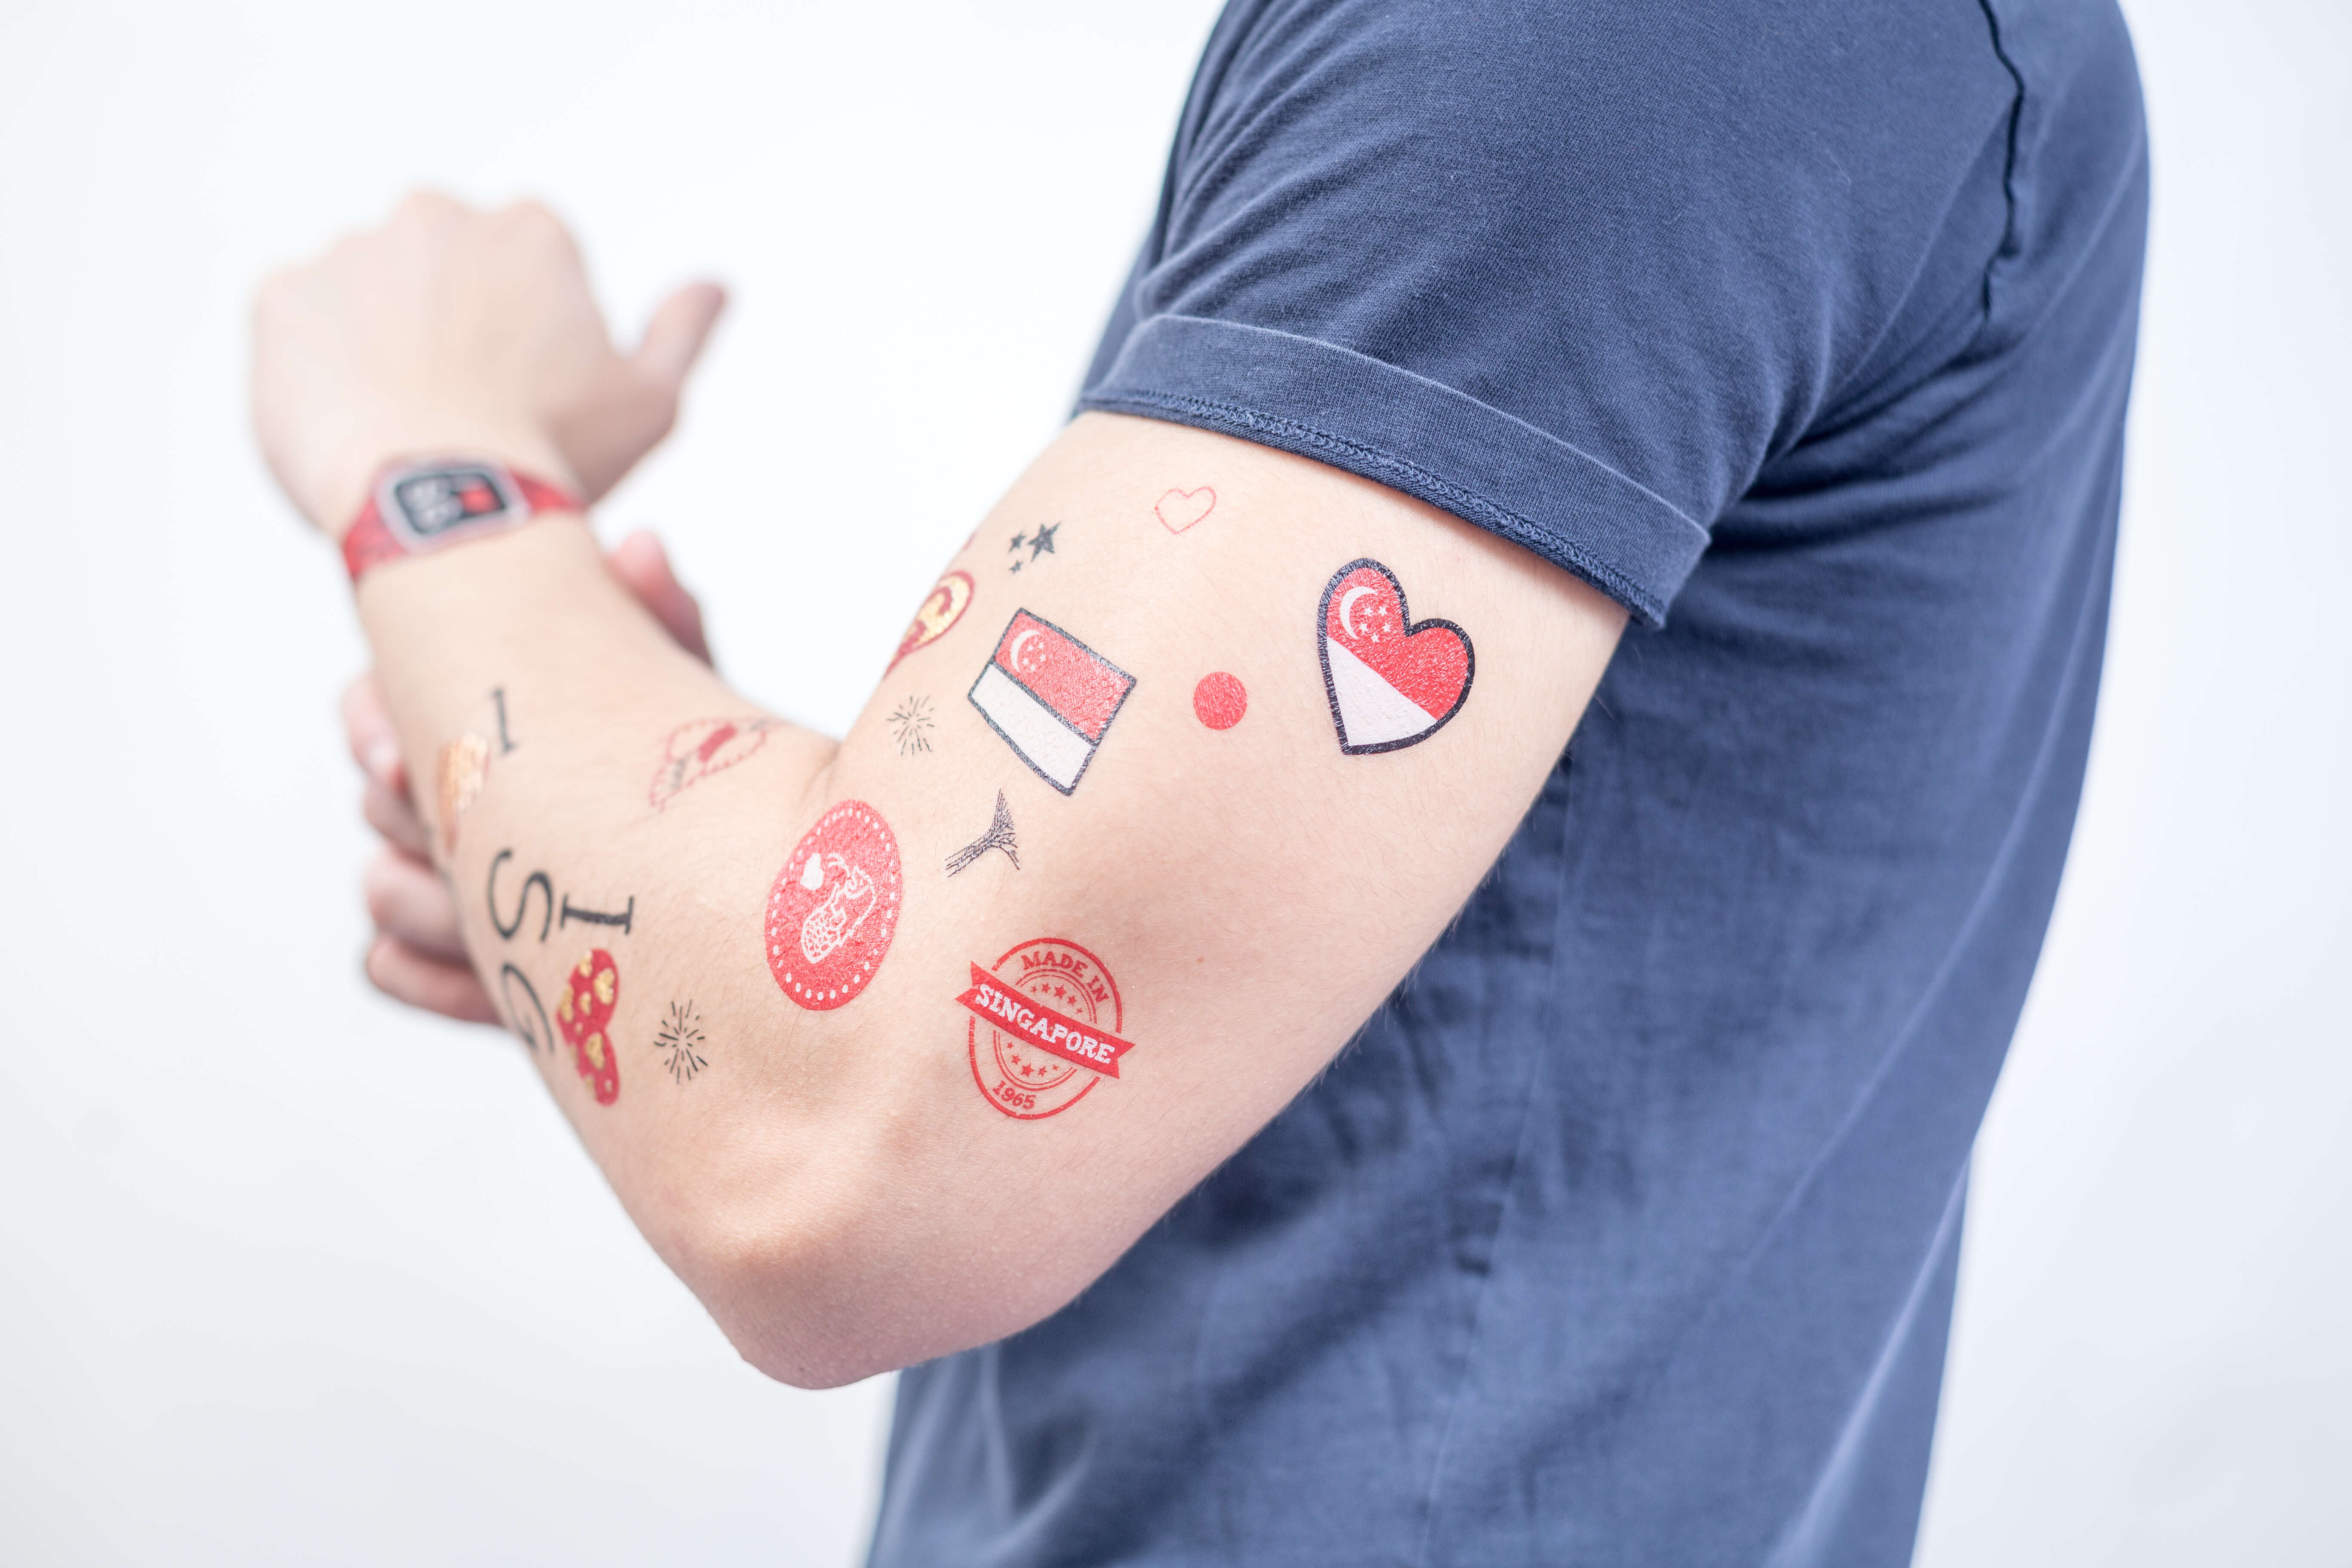 red and white NDP fake tattoos in various designs on arm of a man clad in dark grey t-shirt